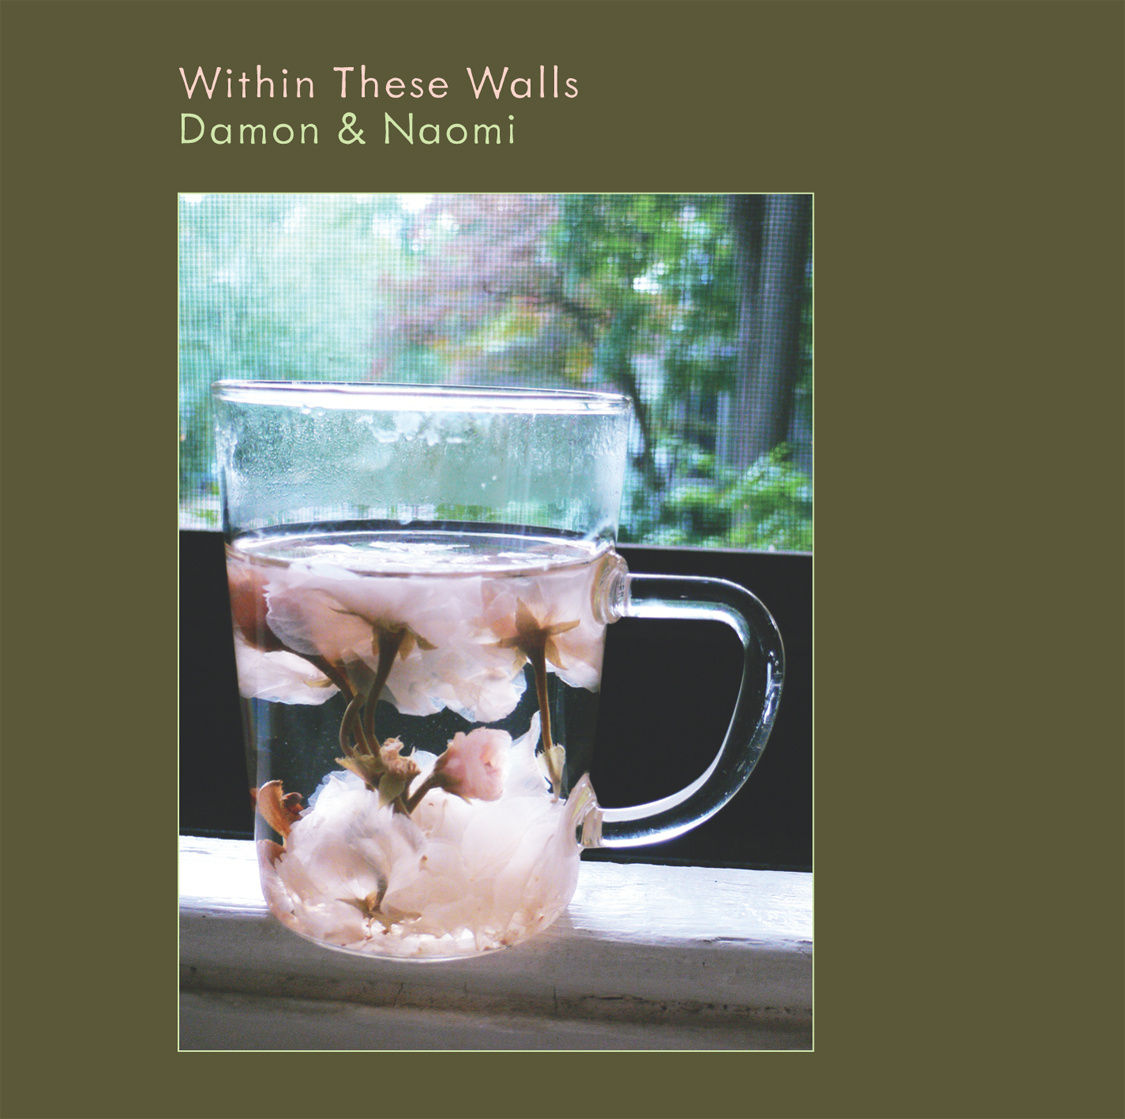 Within These Walls sleeve image